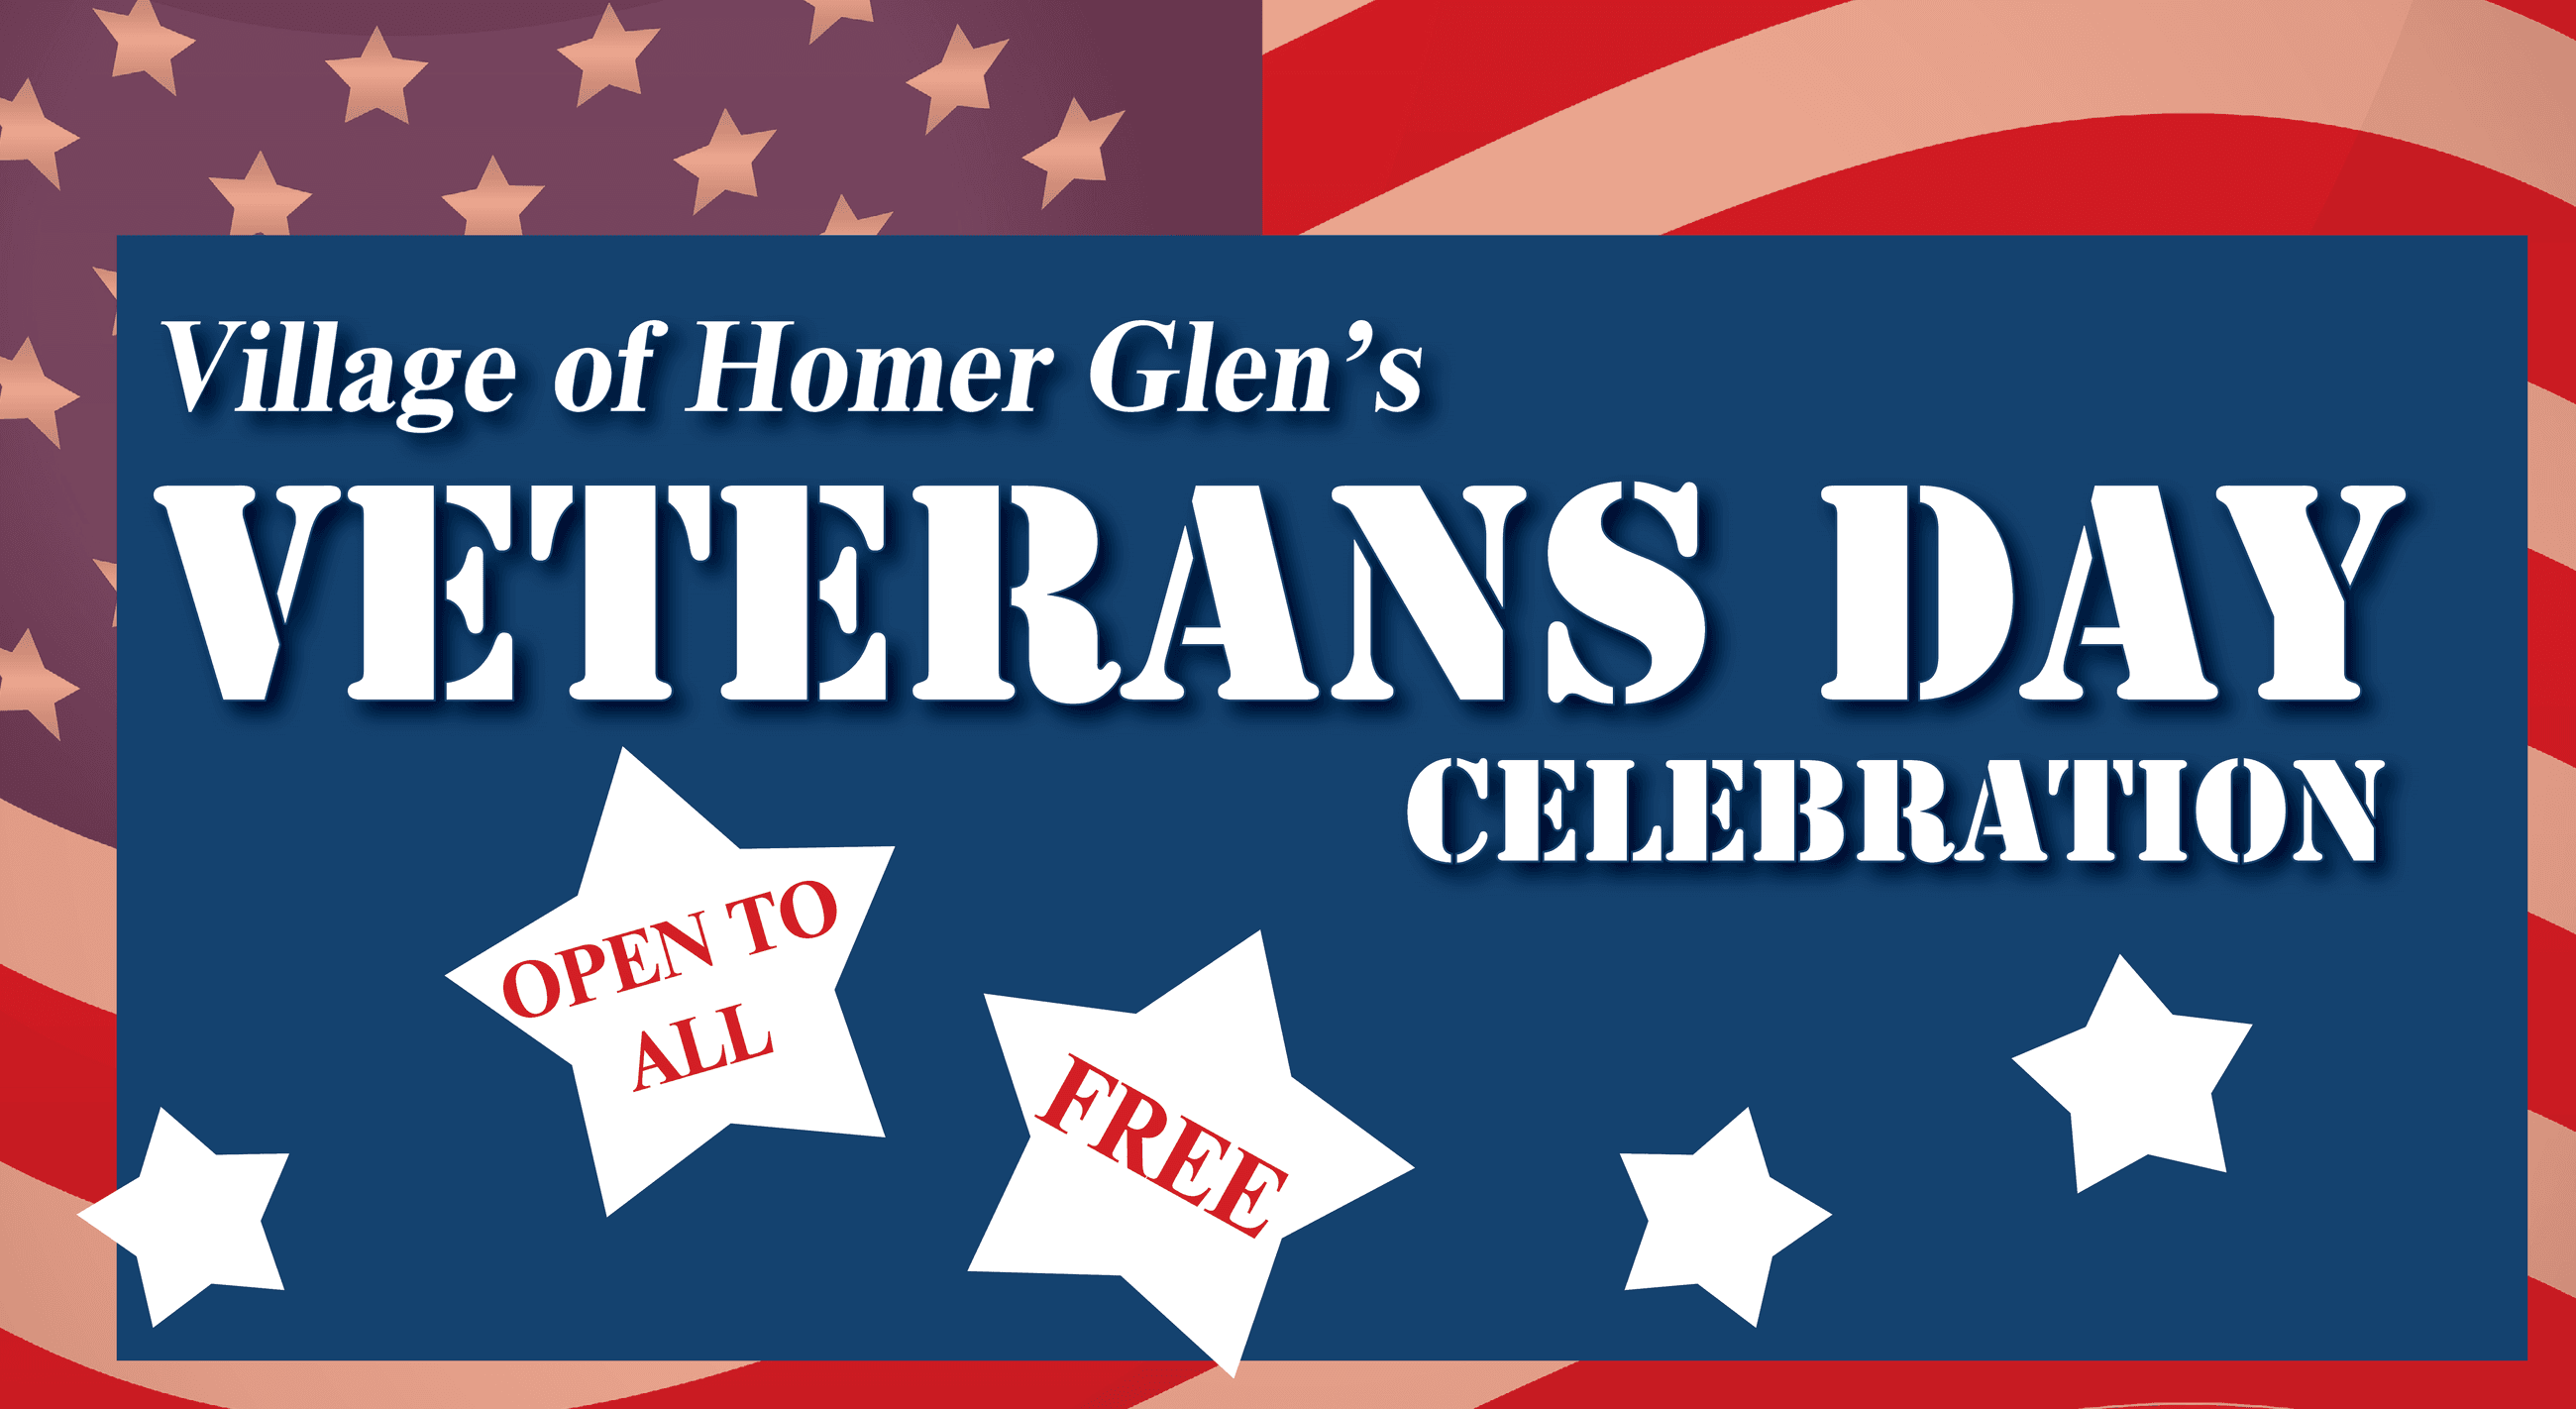 FB_Event cover_veterans day